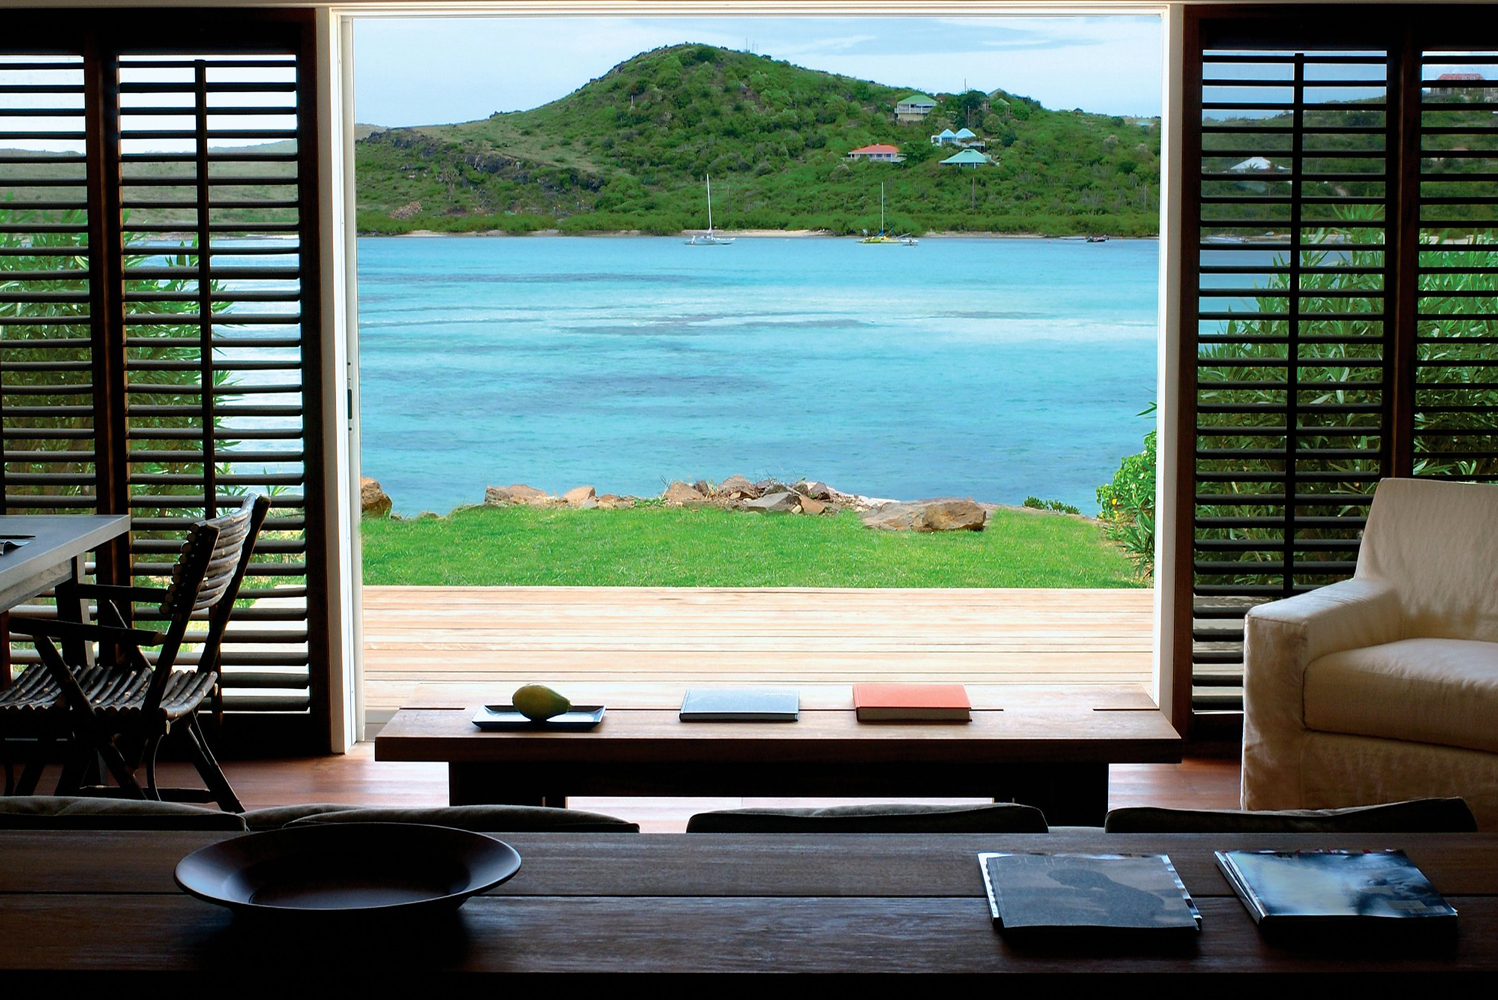 Sereno Hotels will reopen Le Sereno St. Barth on December 1.